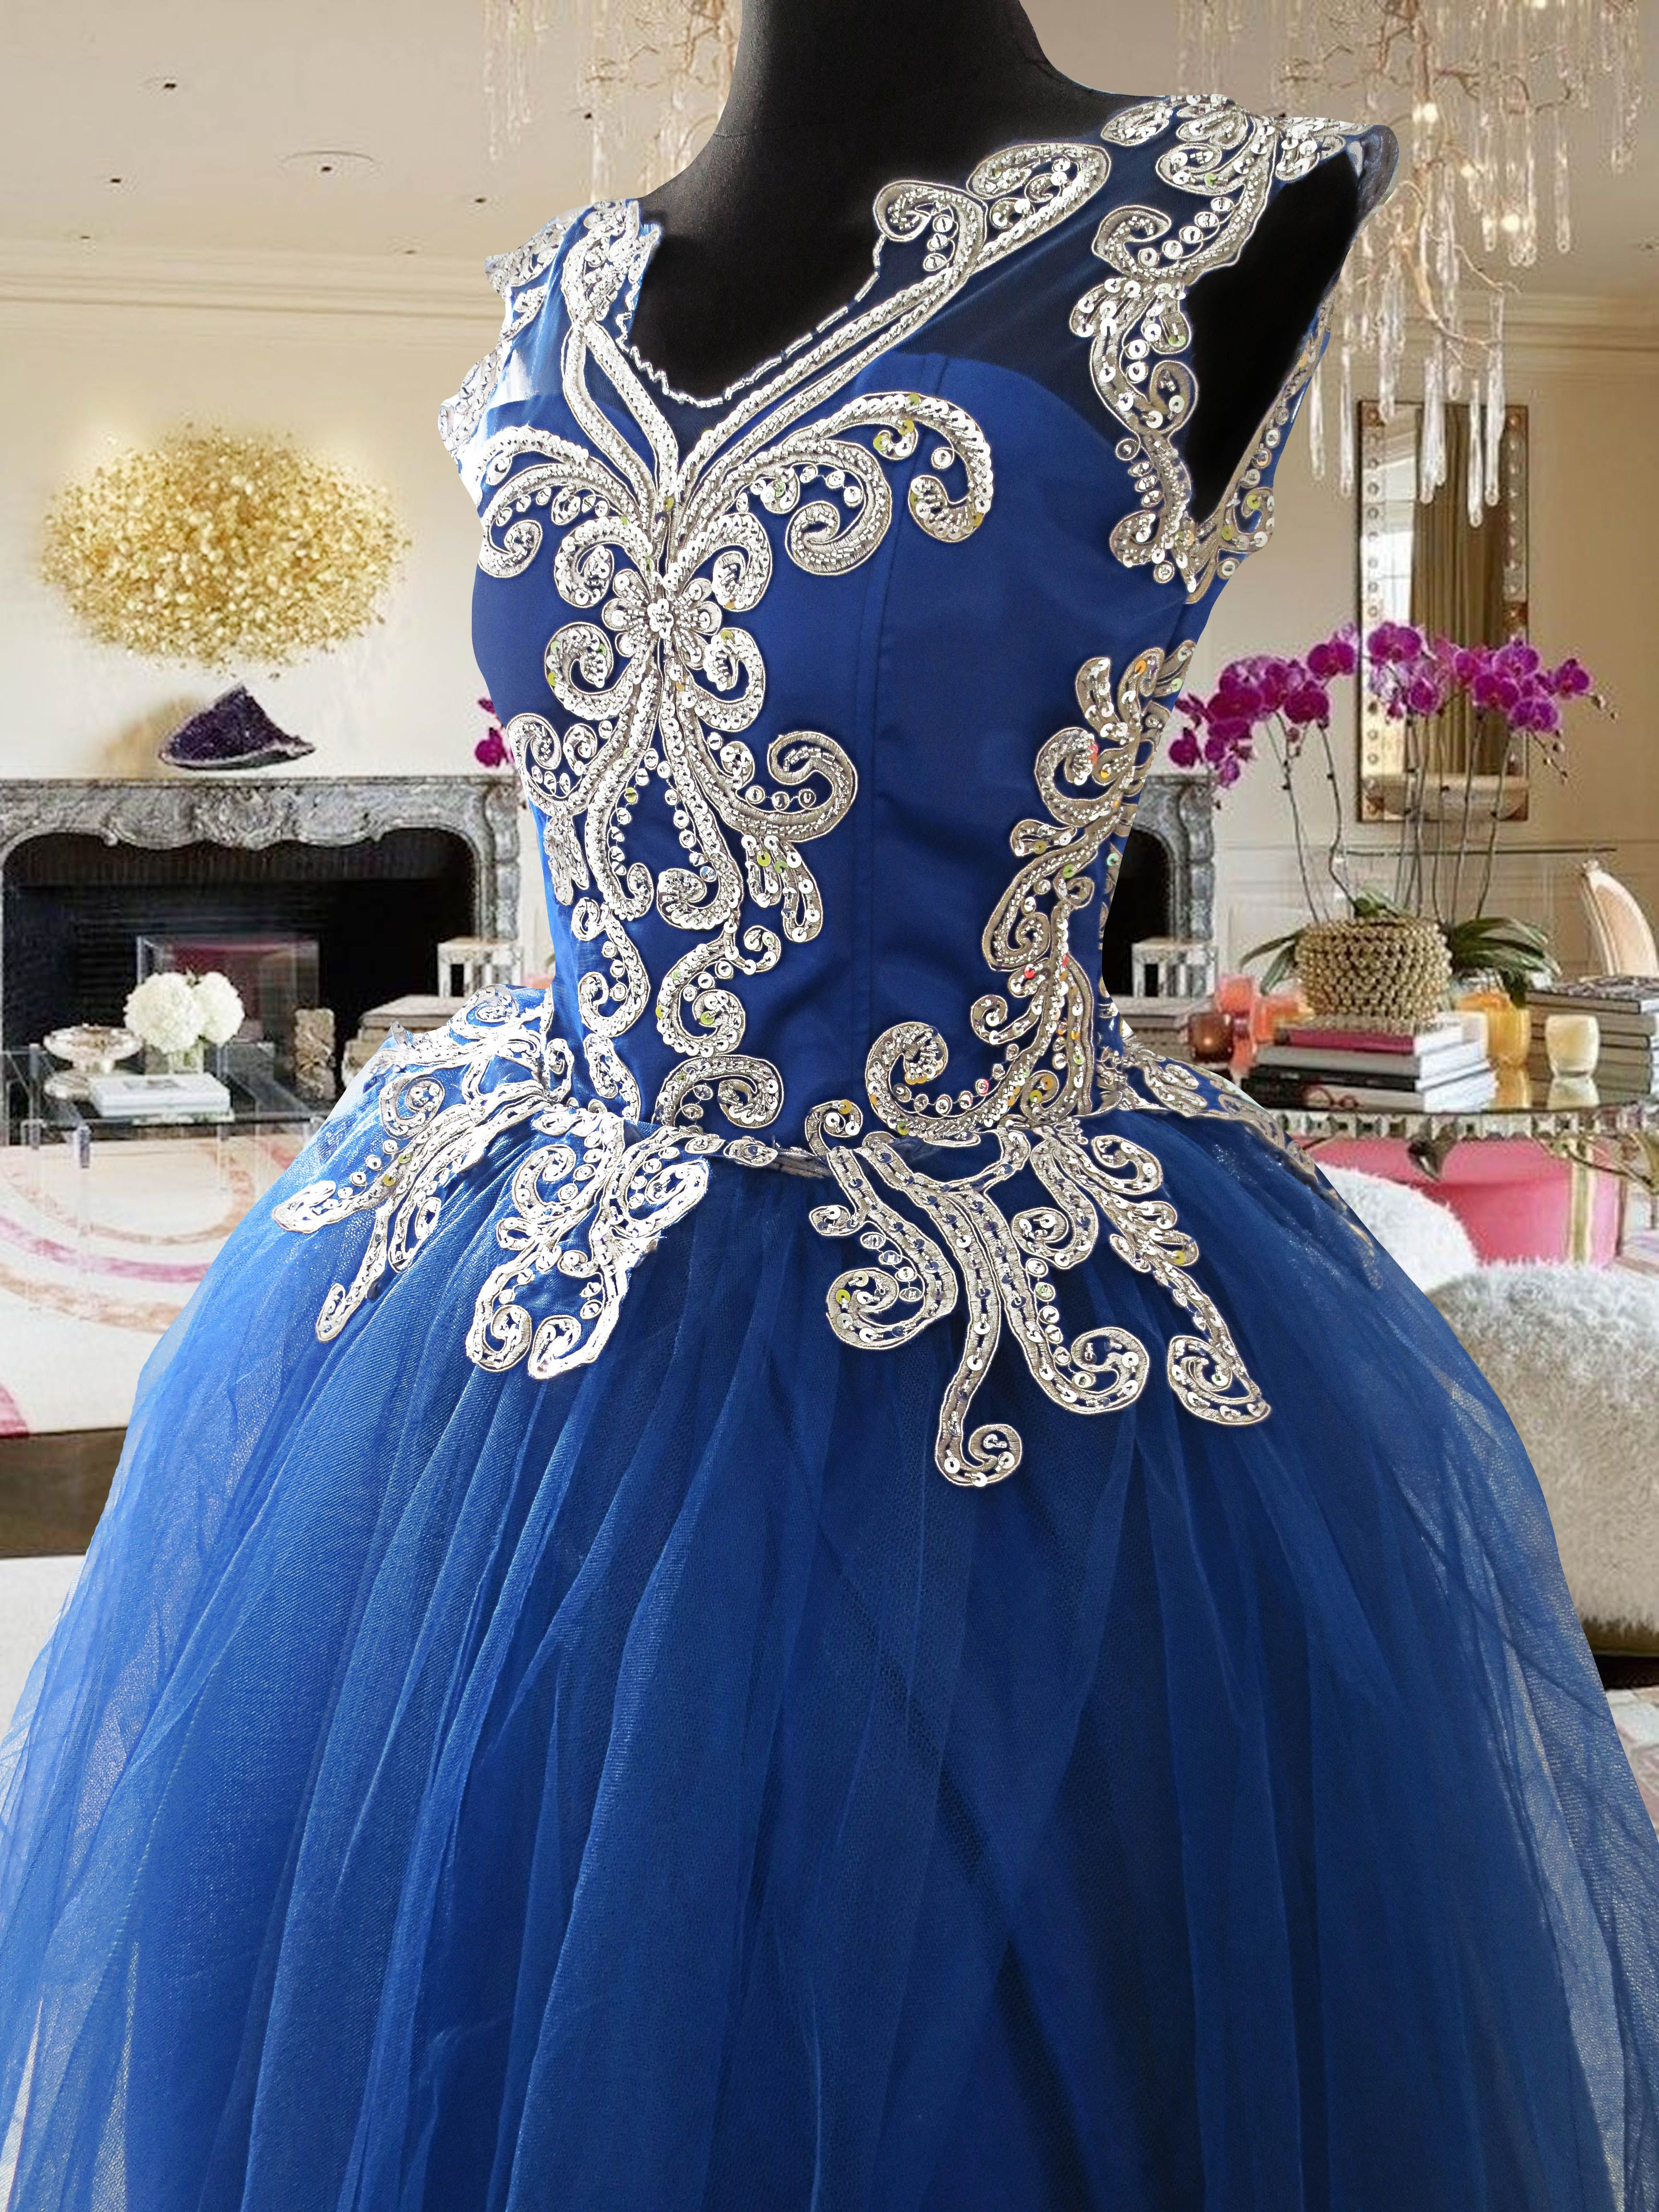 blue and white lace tulle ball gown for rent Php3,000. www